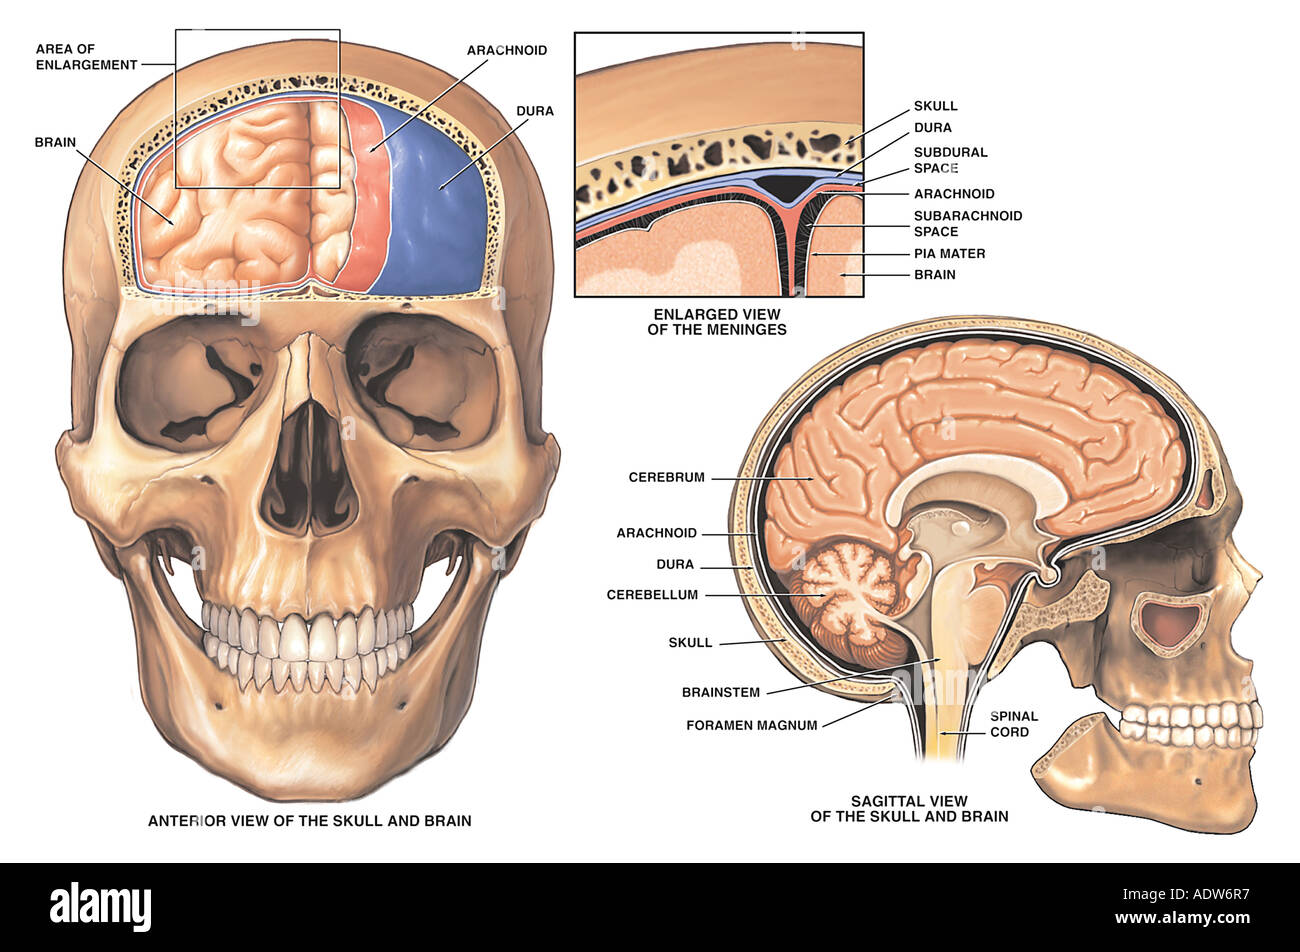 Anatomy Of The Brain And Meninges Stock Photo 7712246 Alamy